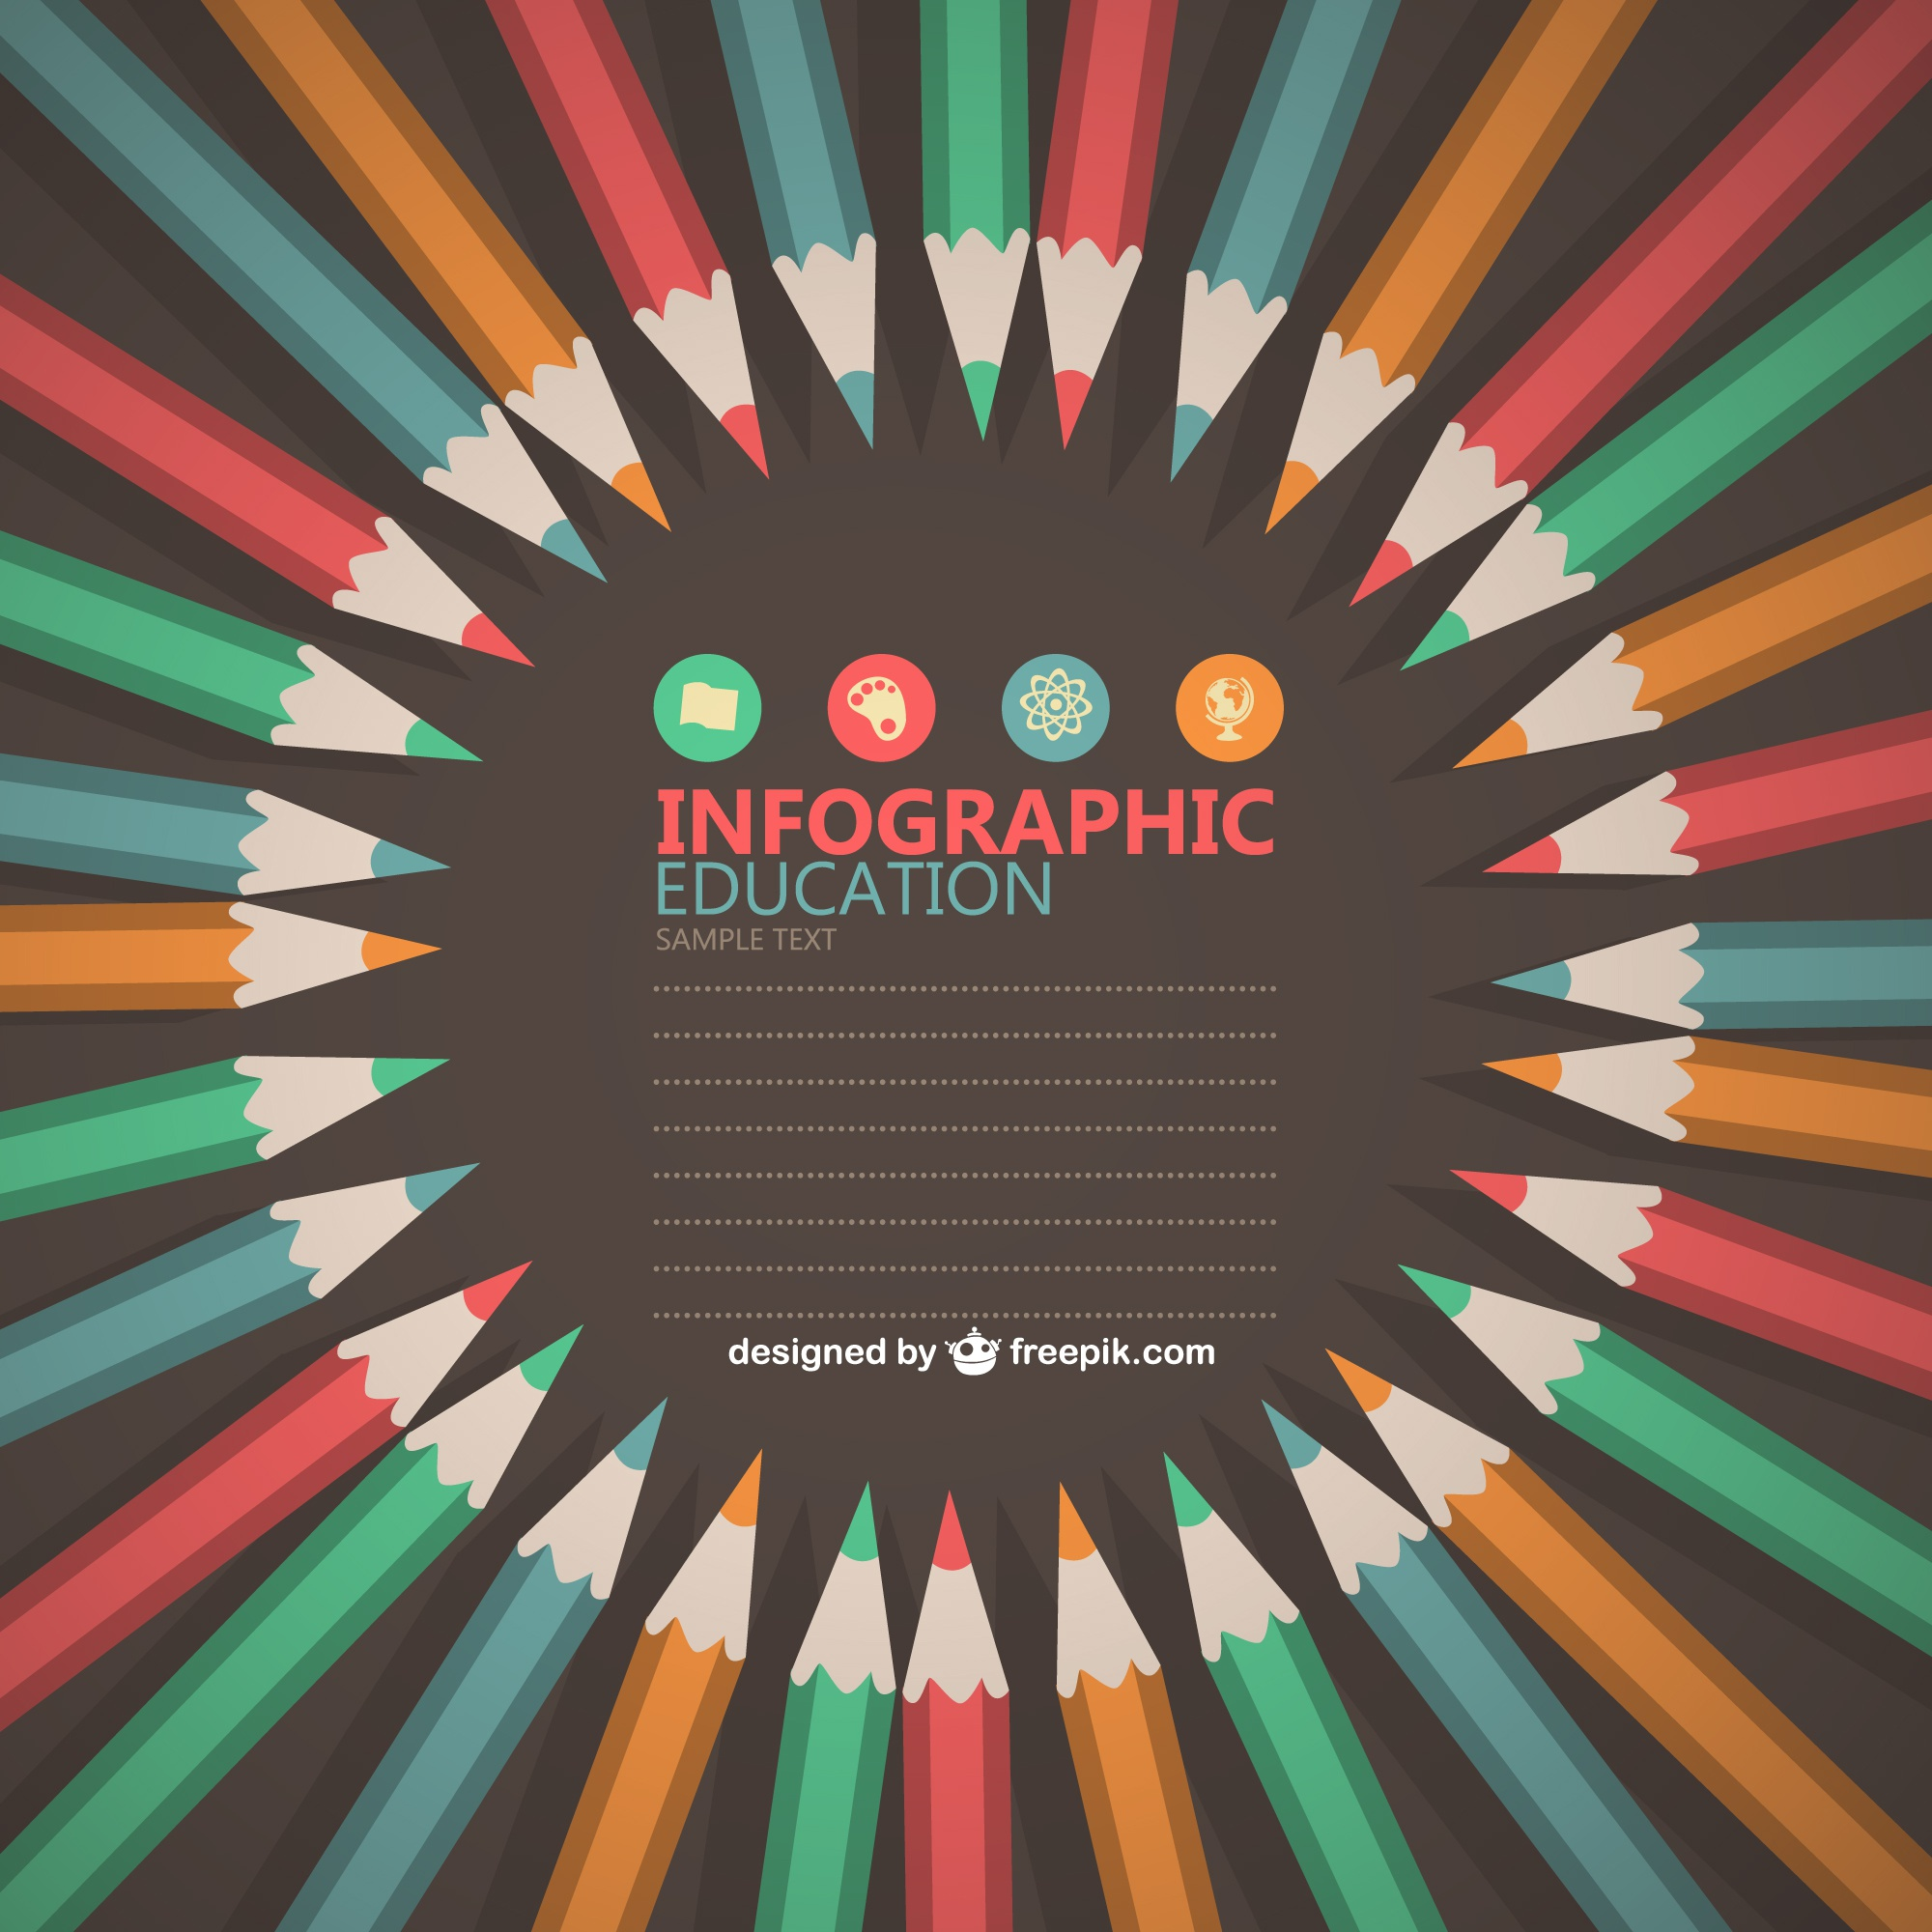 Educational infographic free design